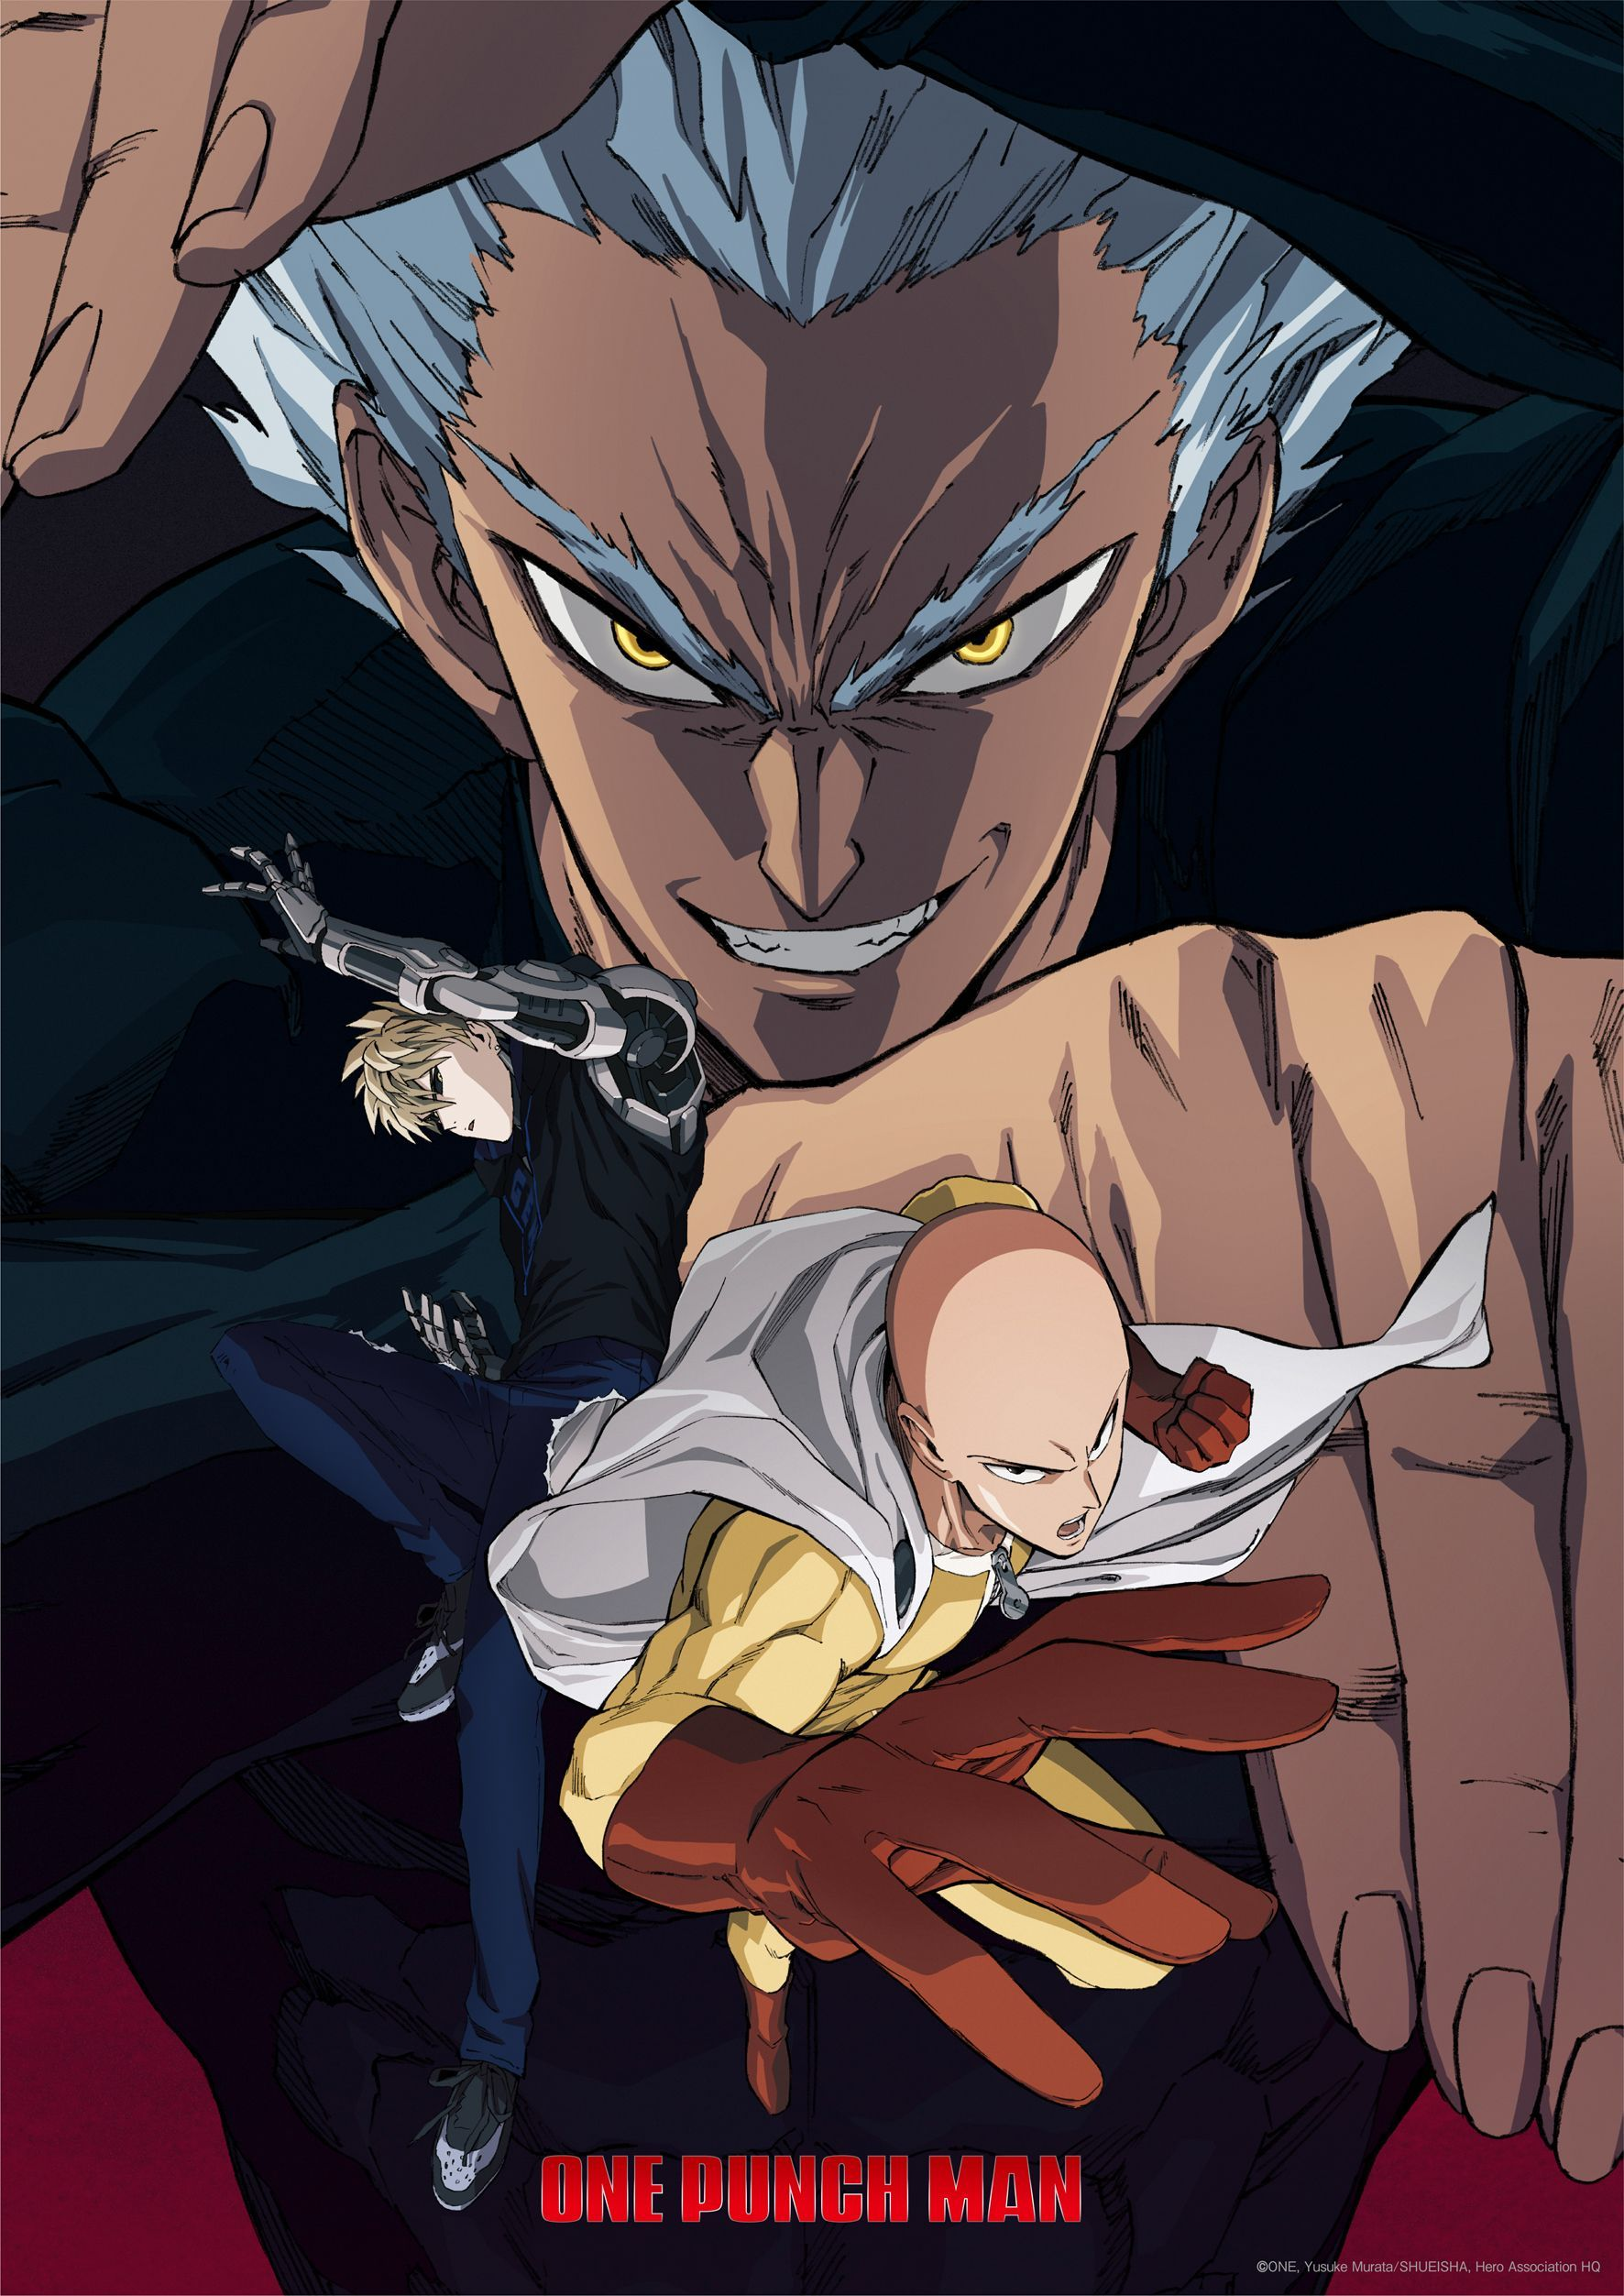 One punch man S2 anime